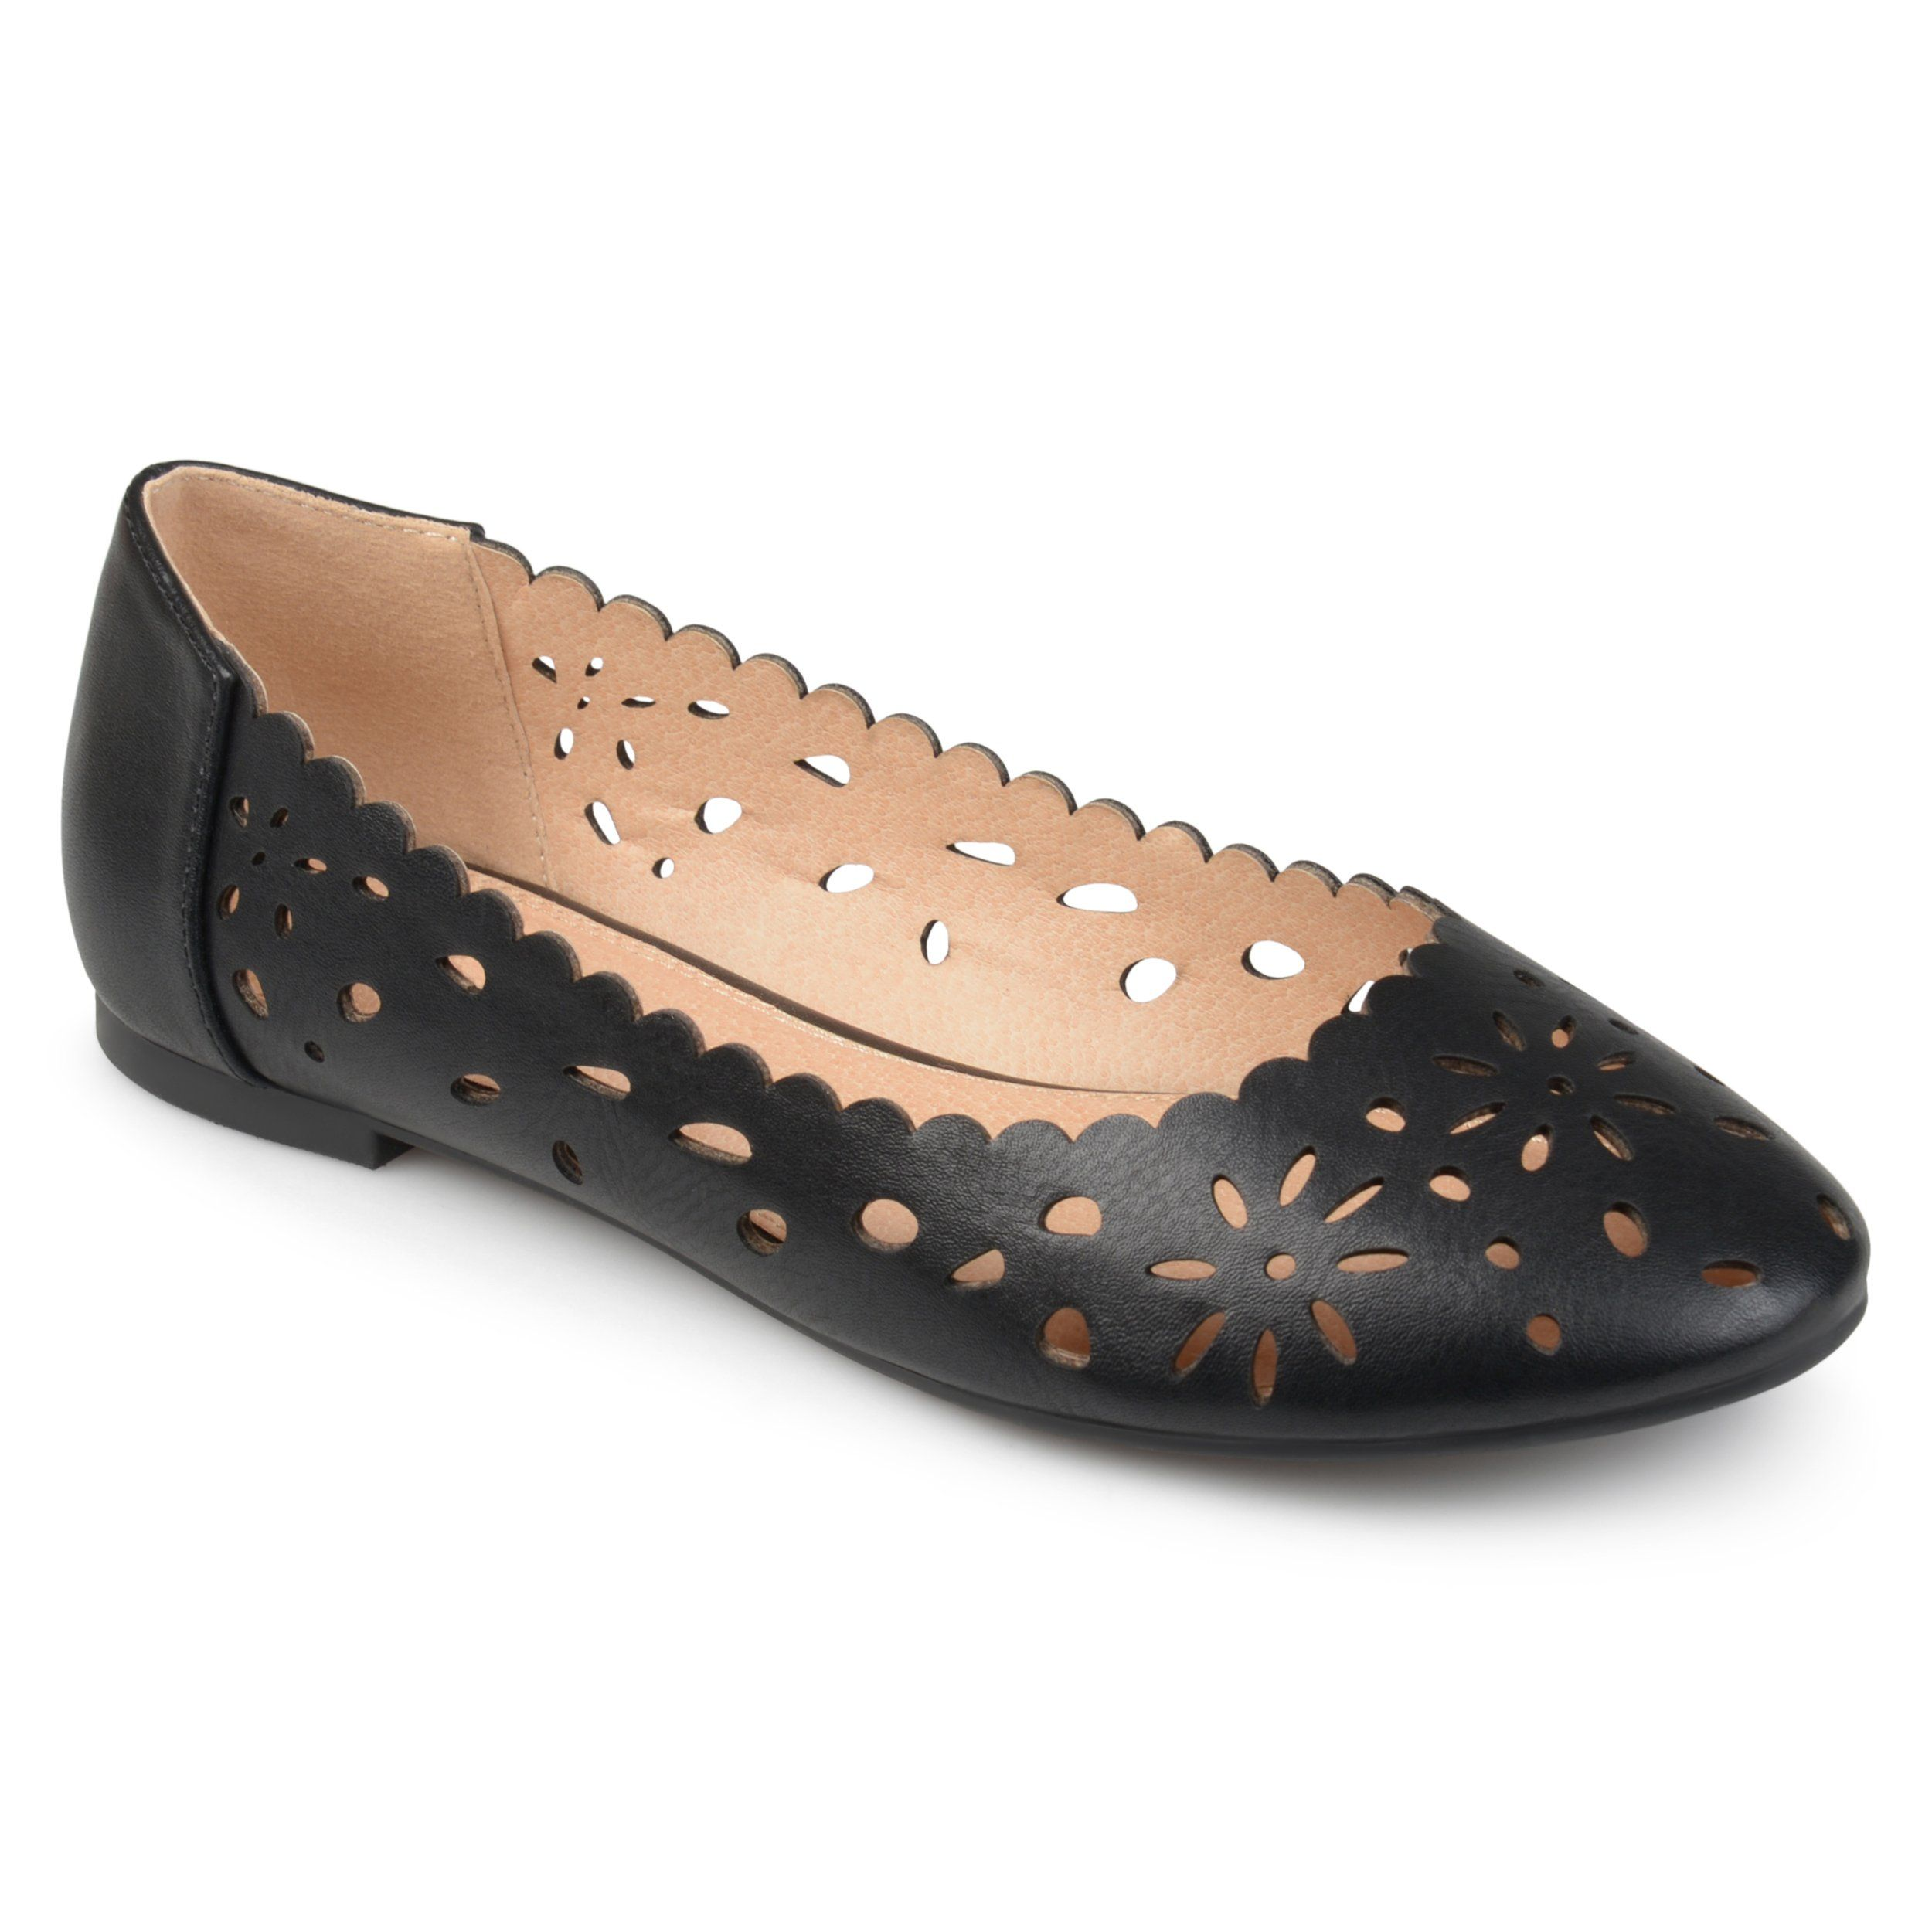 6c097598c ... flat shoes by Journee Collection. Faux leather uppers highlight  decorative cut-outs and scalloped edges bordering the silhouette. Classic round  toes add ...